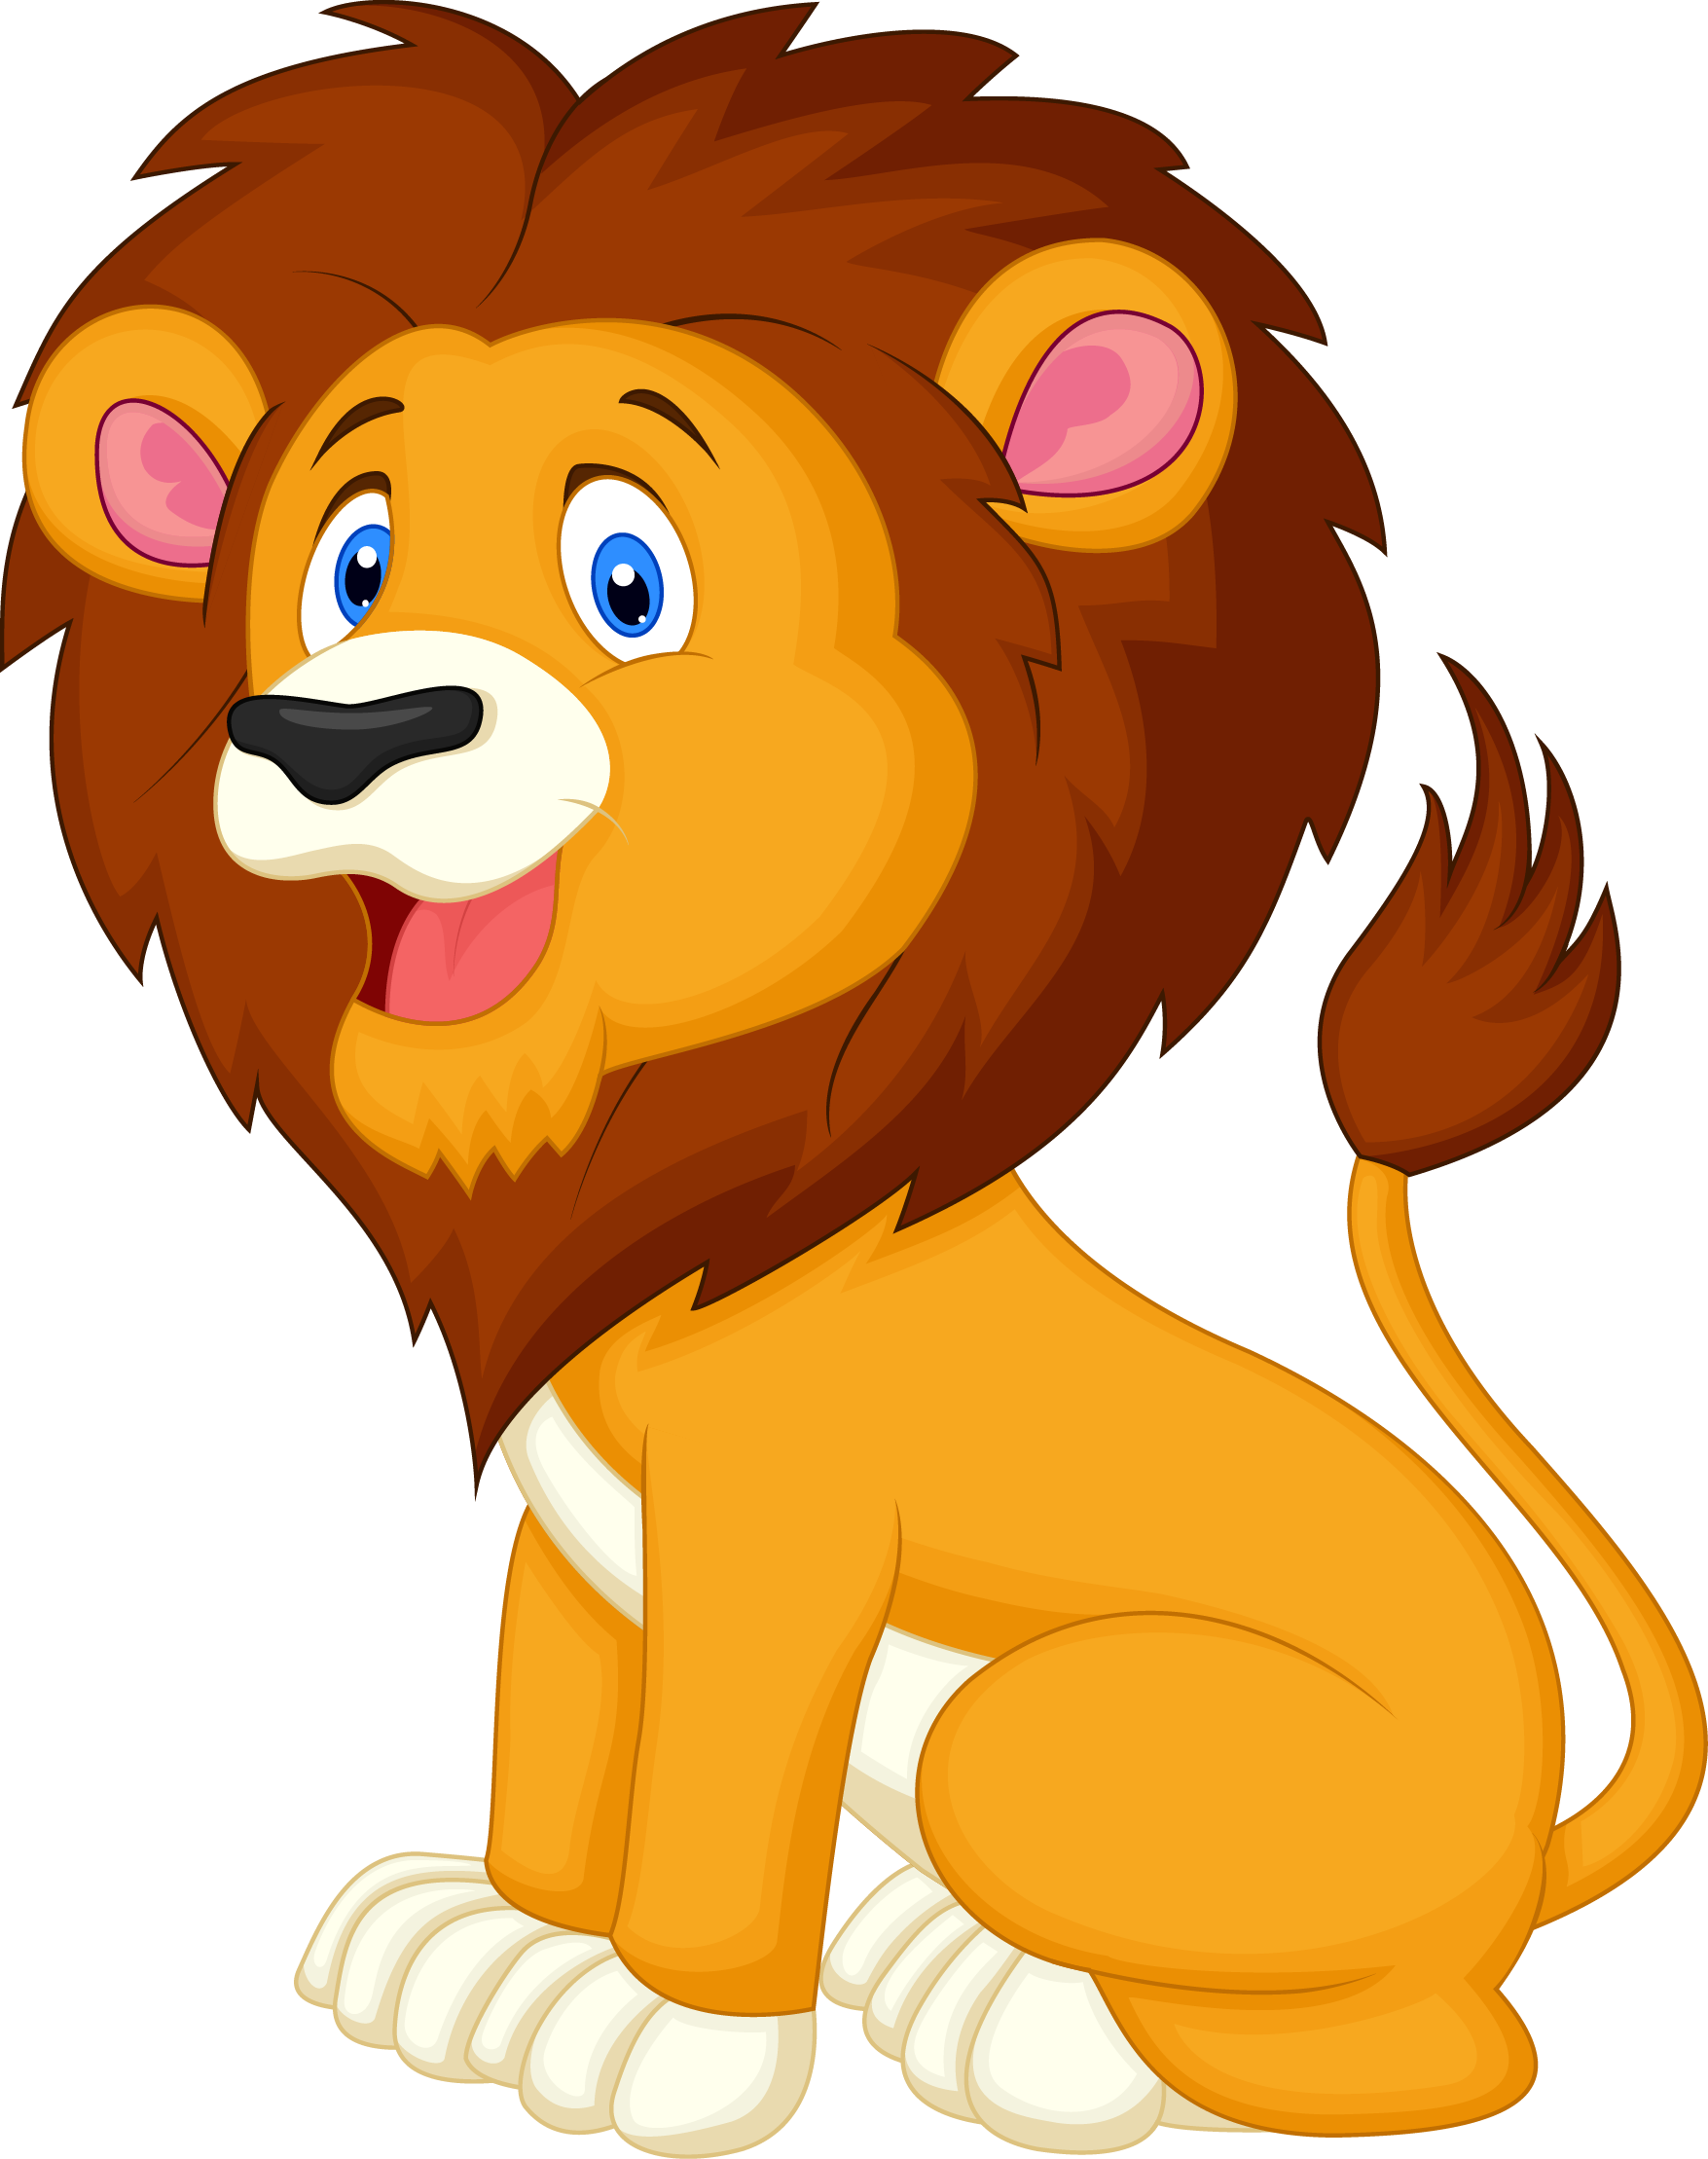 Free lion clipart banner library stock Lion Clipart for download free – Free Clipart Images banner library stock